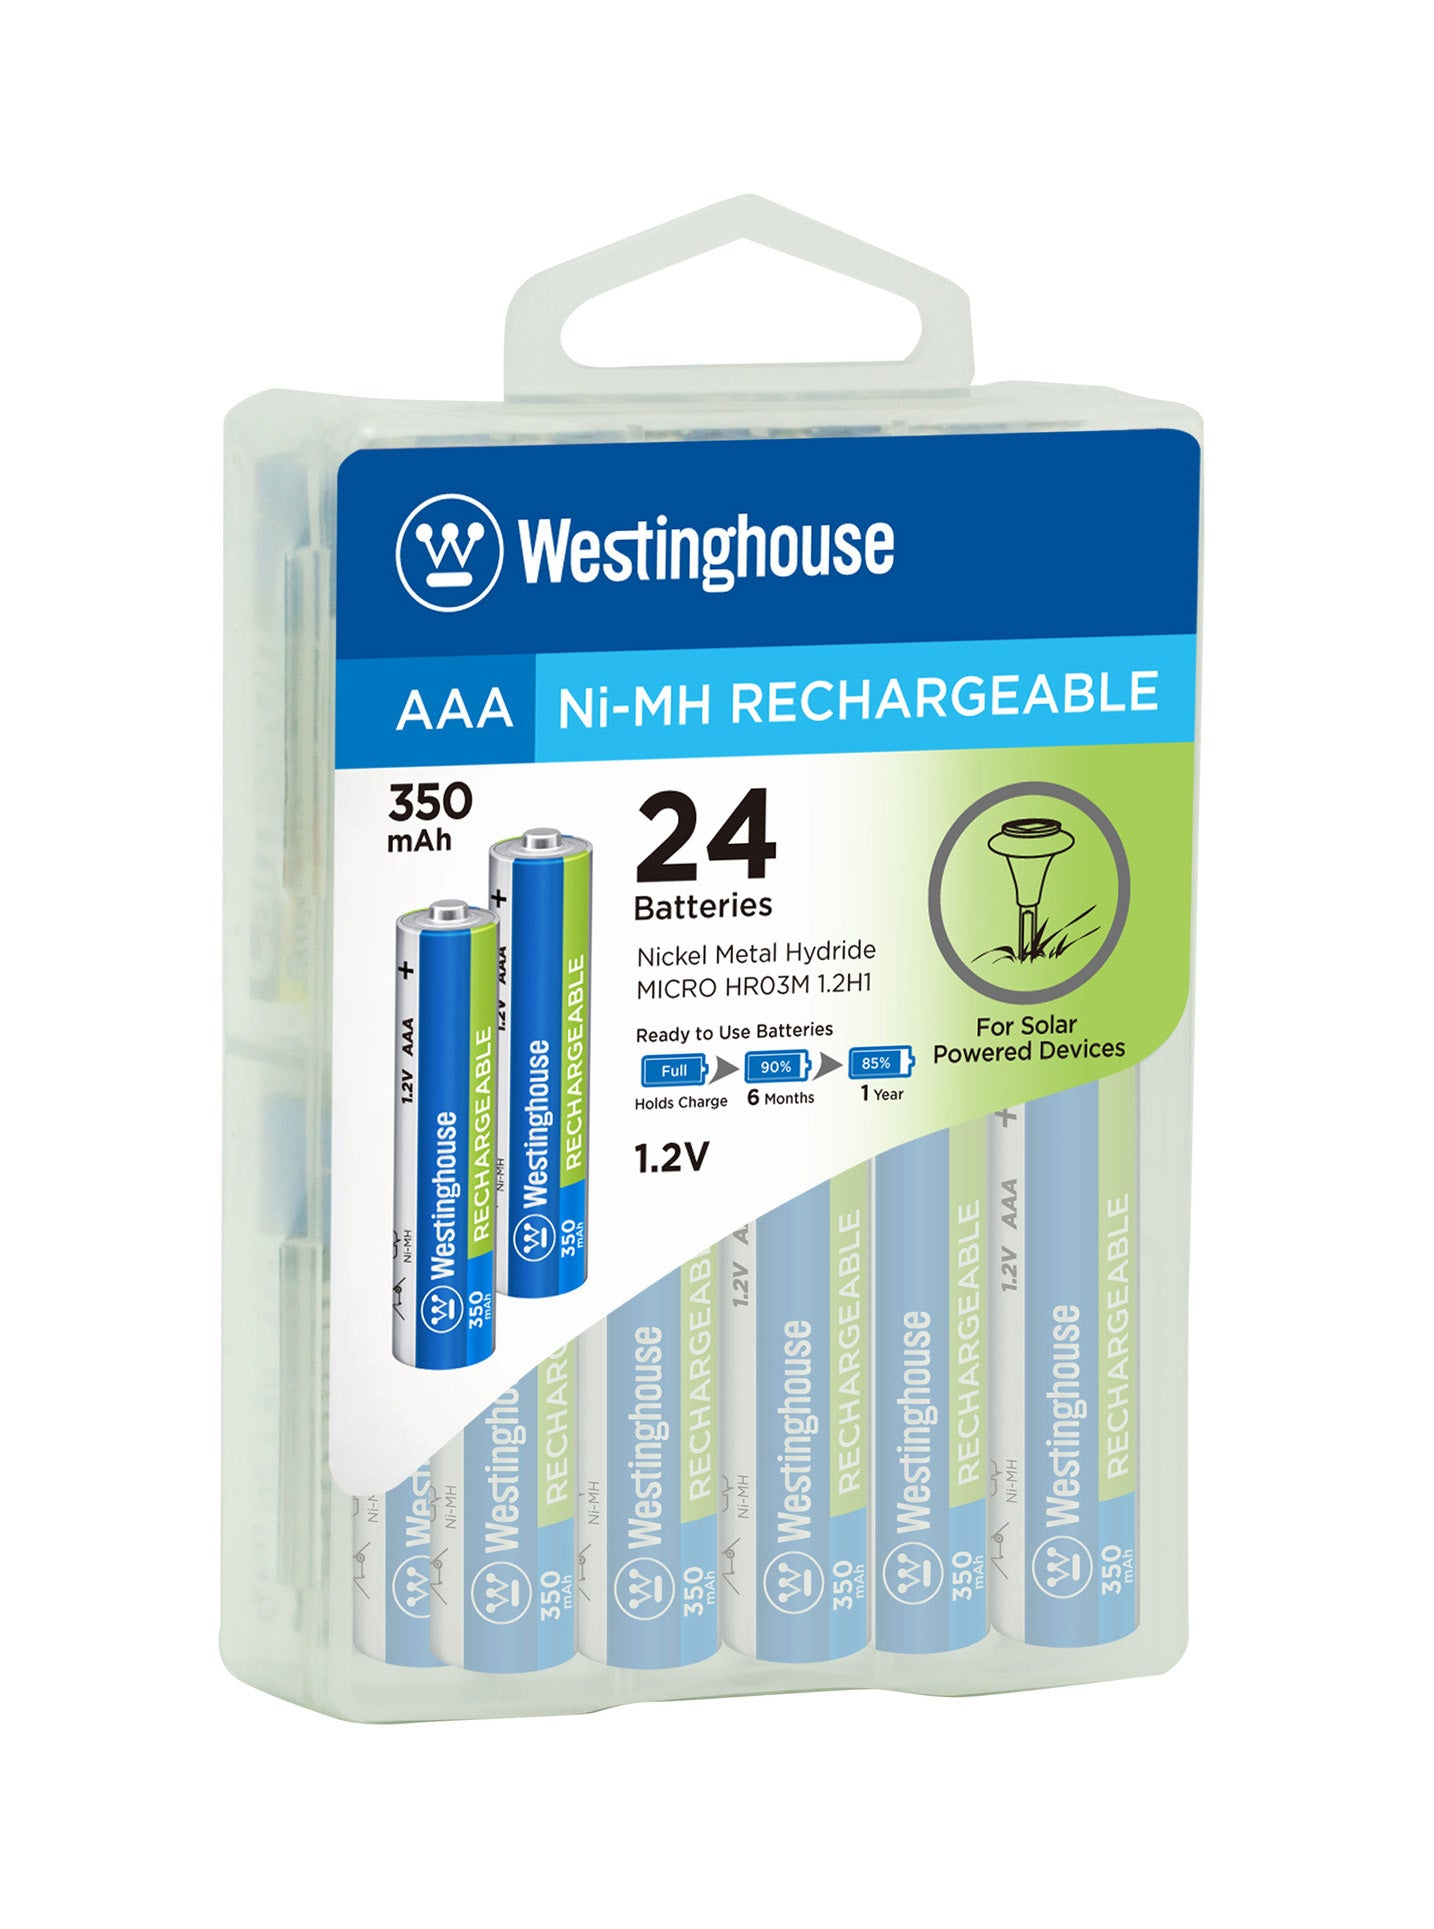 Westinghouse AAA Ni-Mh Rechargeable Batteries 350mAh 24 Hard Pack